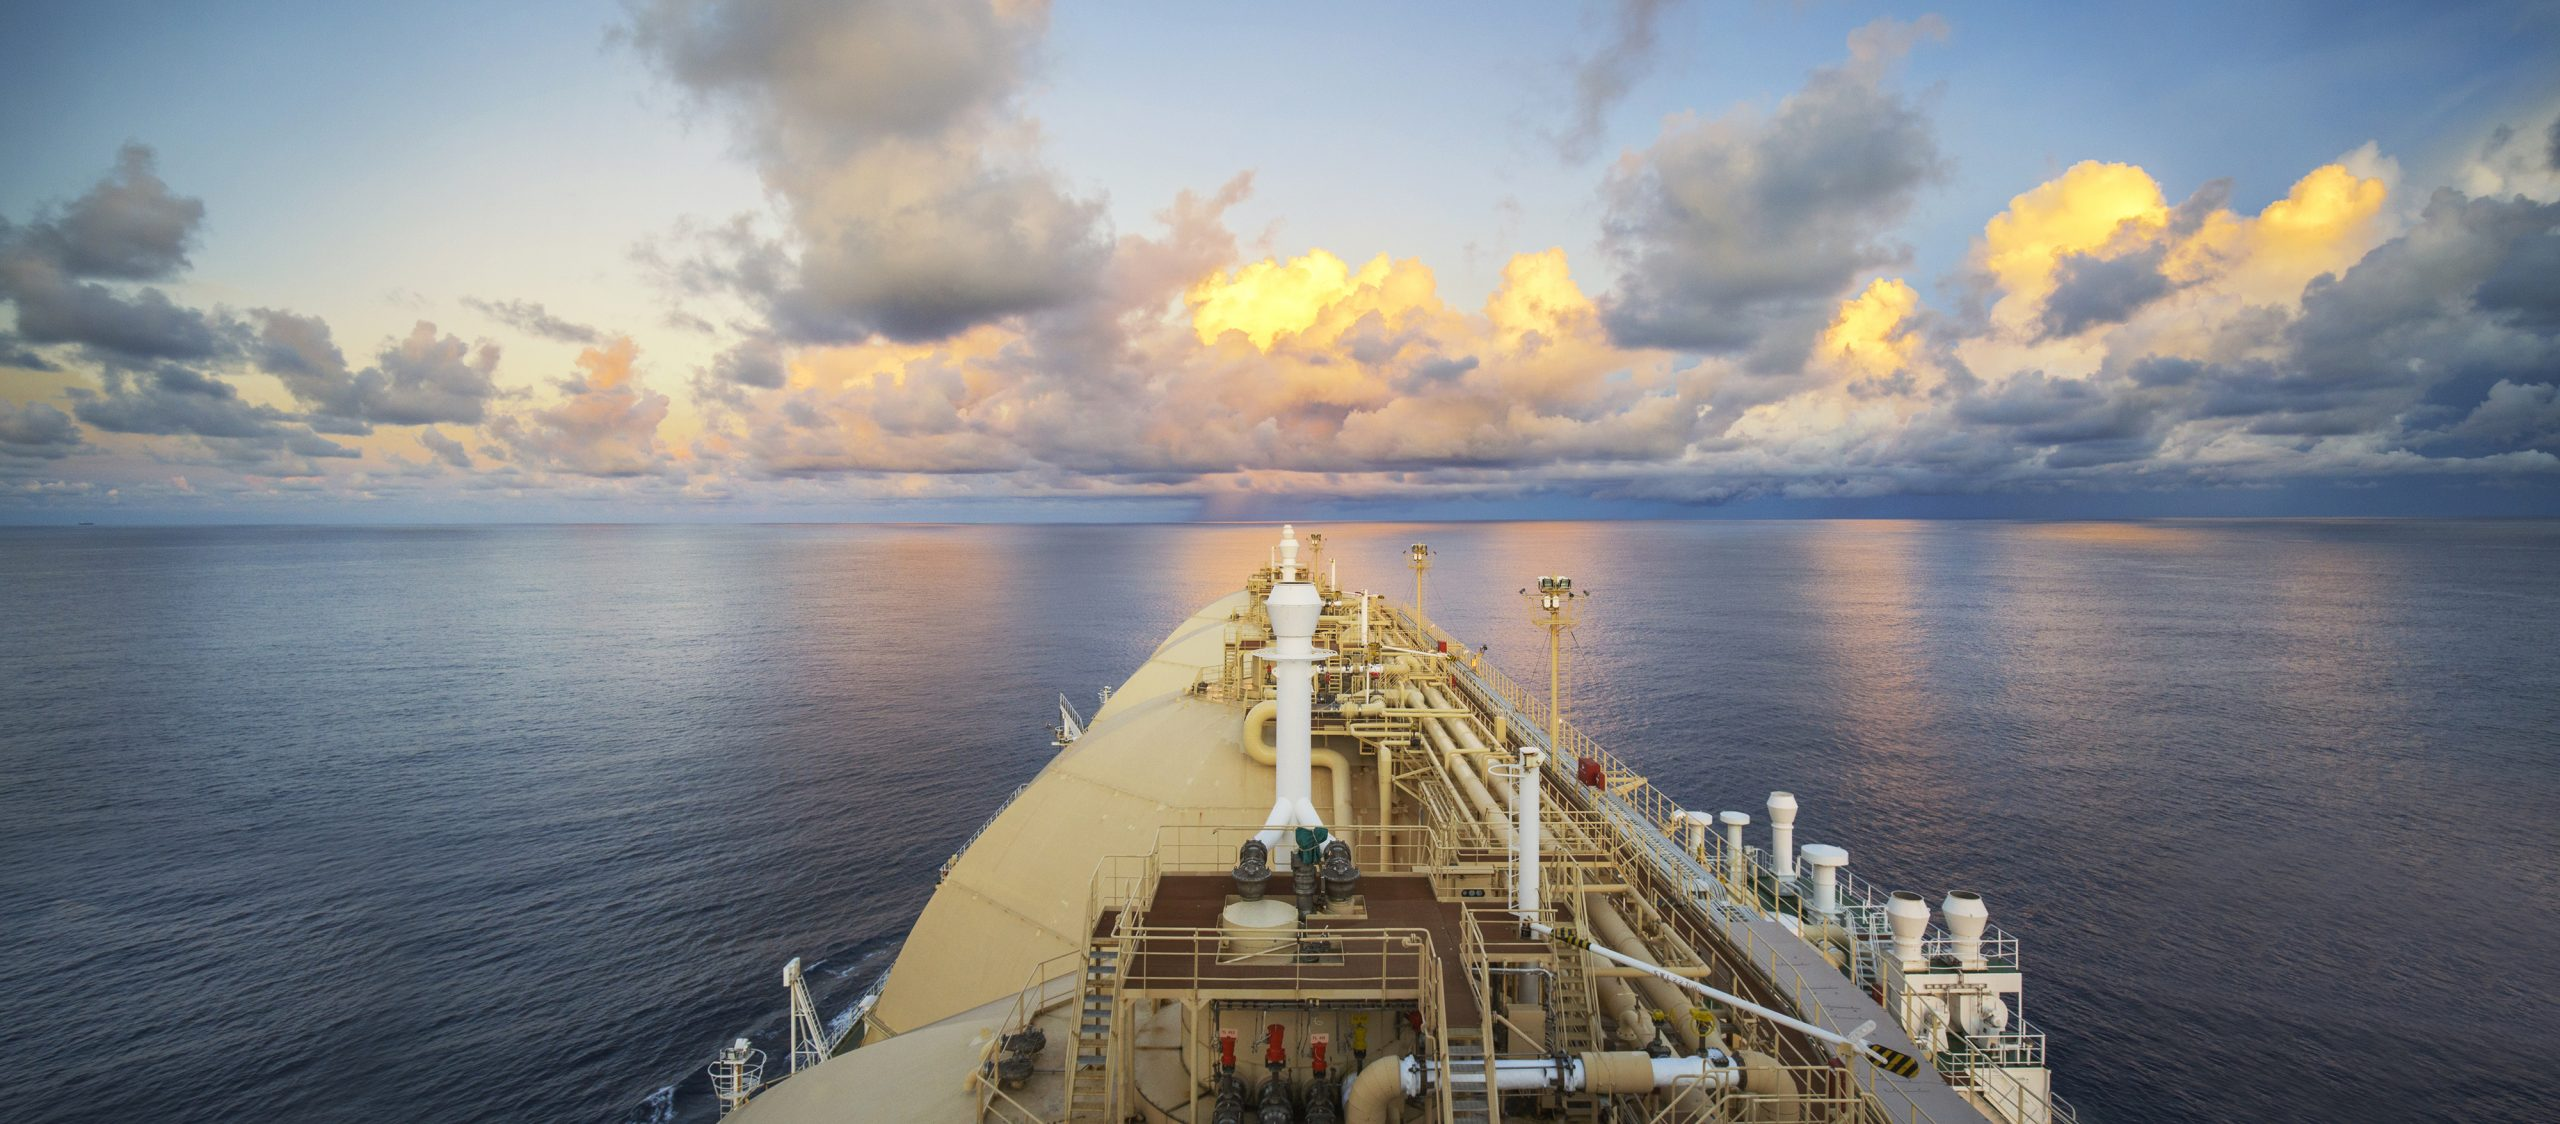 LNG portfolios: to hedge or not to hedge?